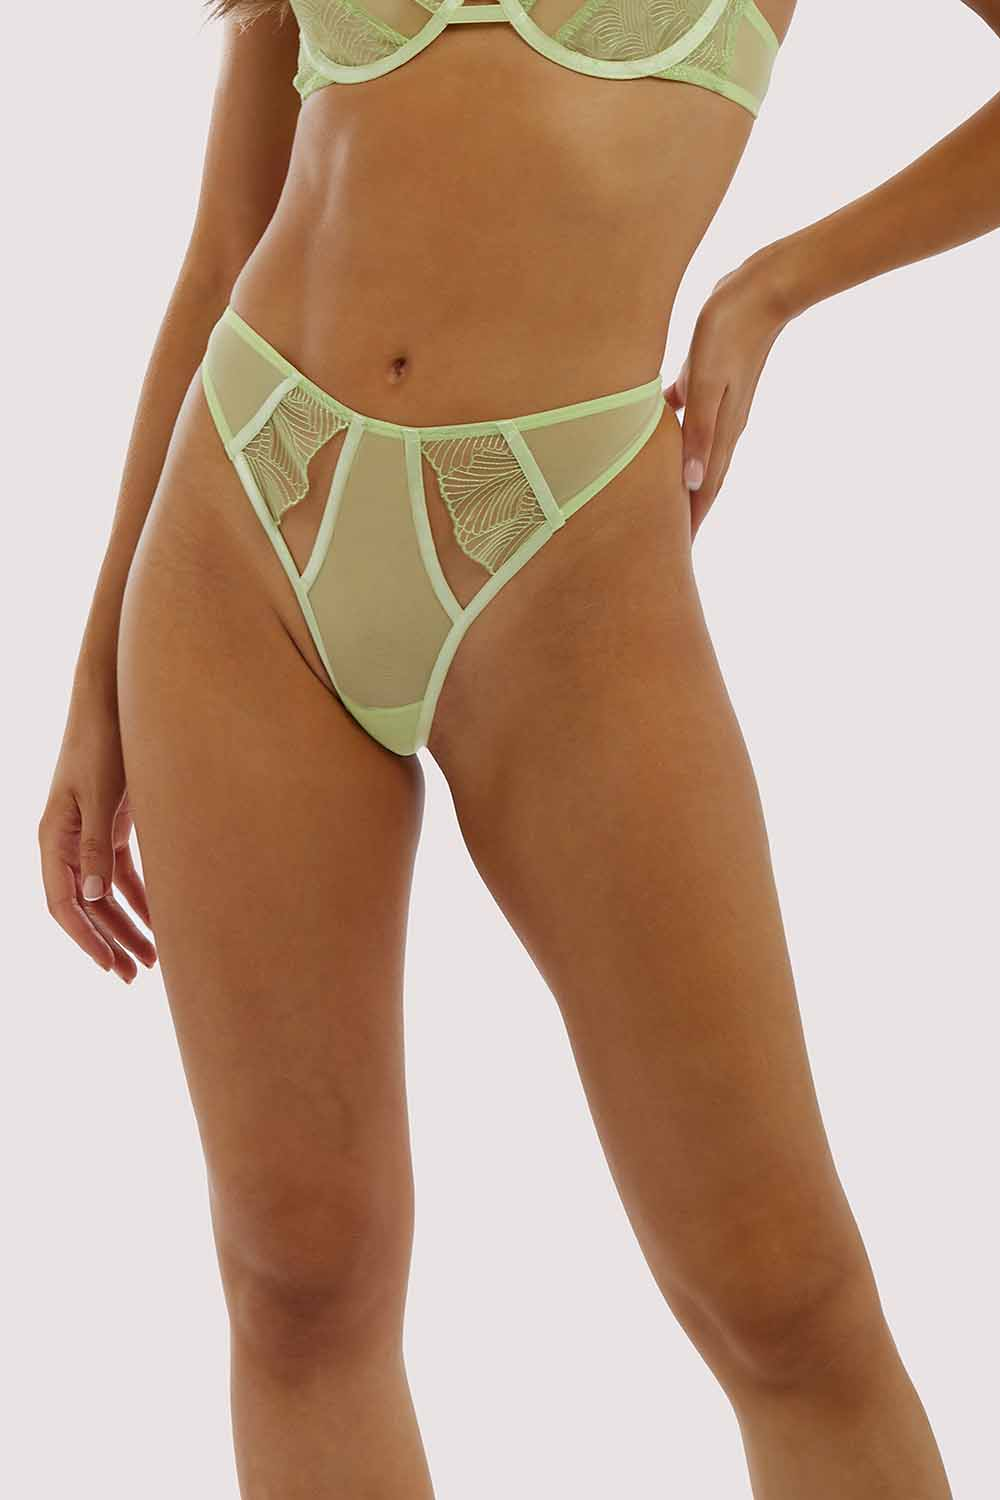 Wolf & Whistle Taha Green Cut out thong UK 10 / US 6